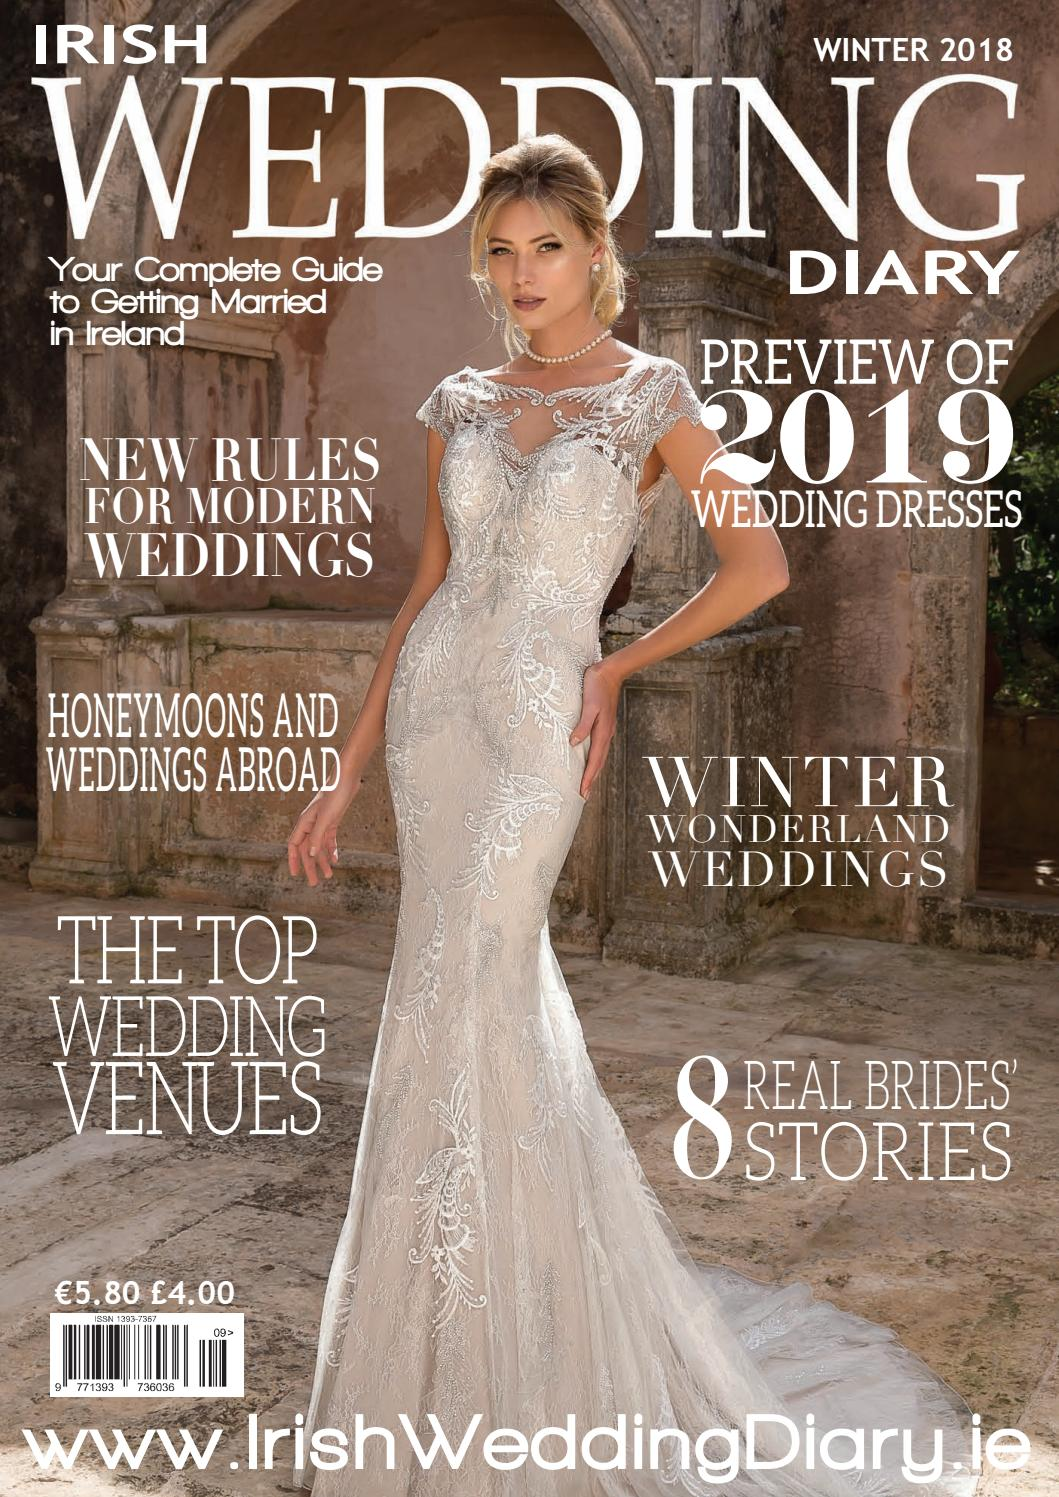 Irish Wedding Diary Magazine Winter 2018 By Irish Wedding Diary